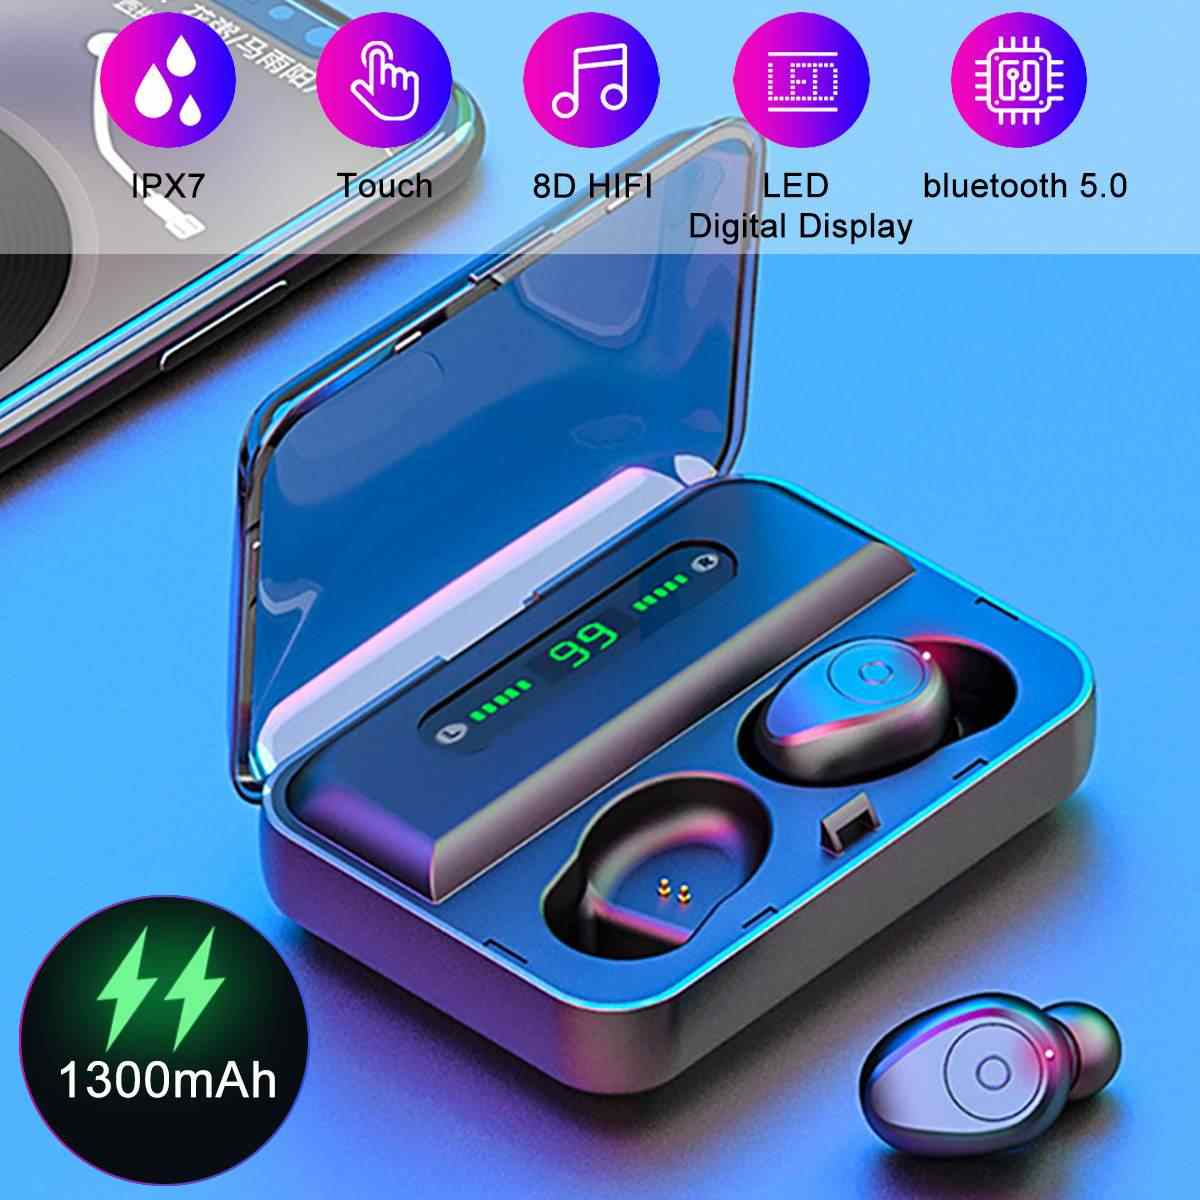 TWS bluetooth 5.0 Earphone LED Display Smart Touchs 8D Stereo IPX7 Waterproof Wireless Earbuds Headset 1300mAh Charging box